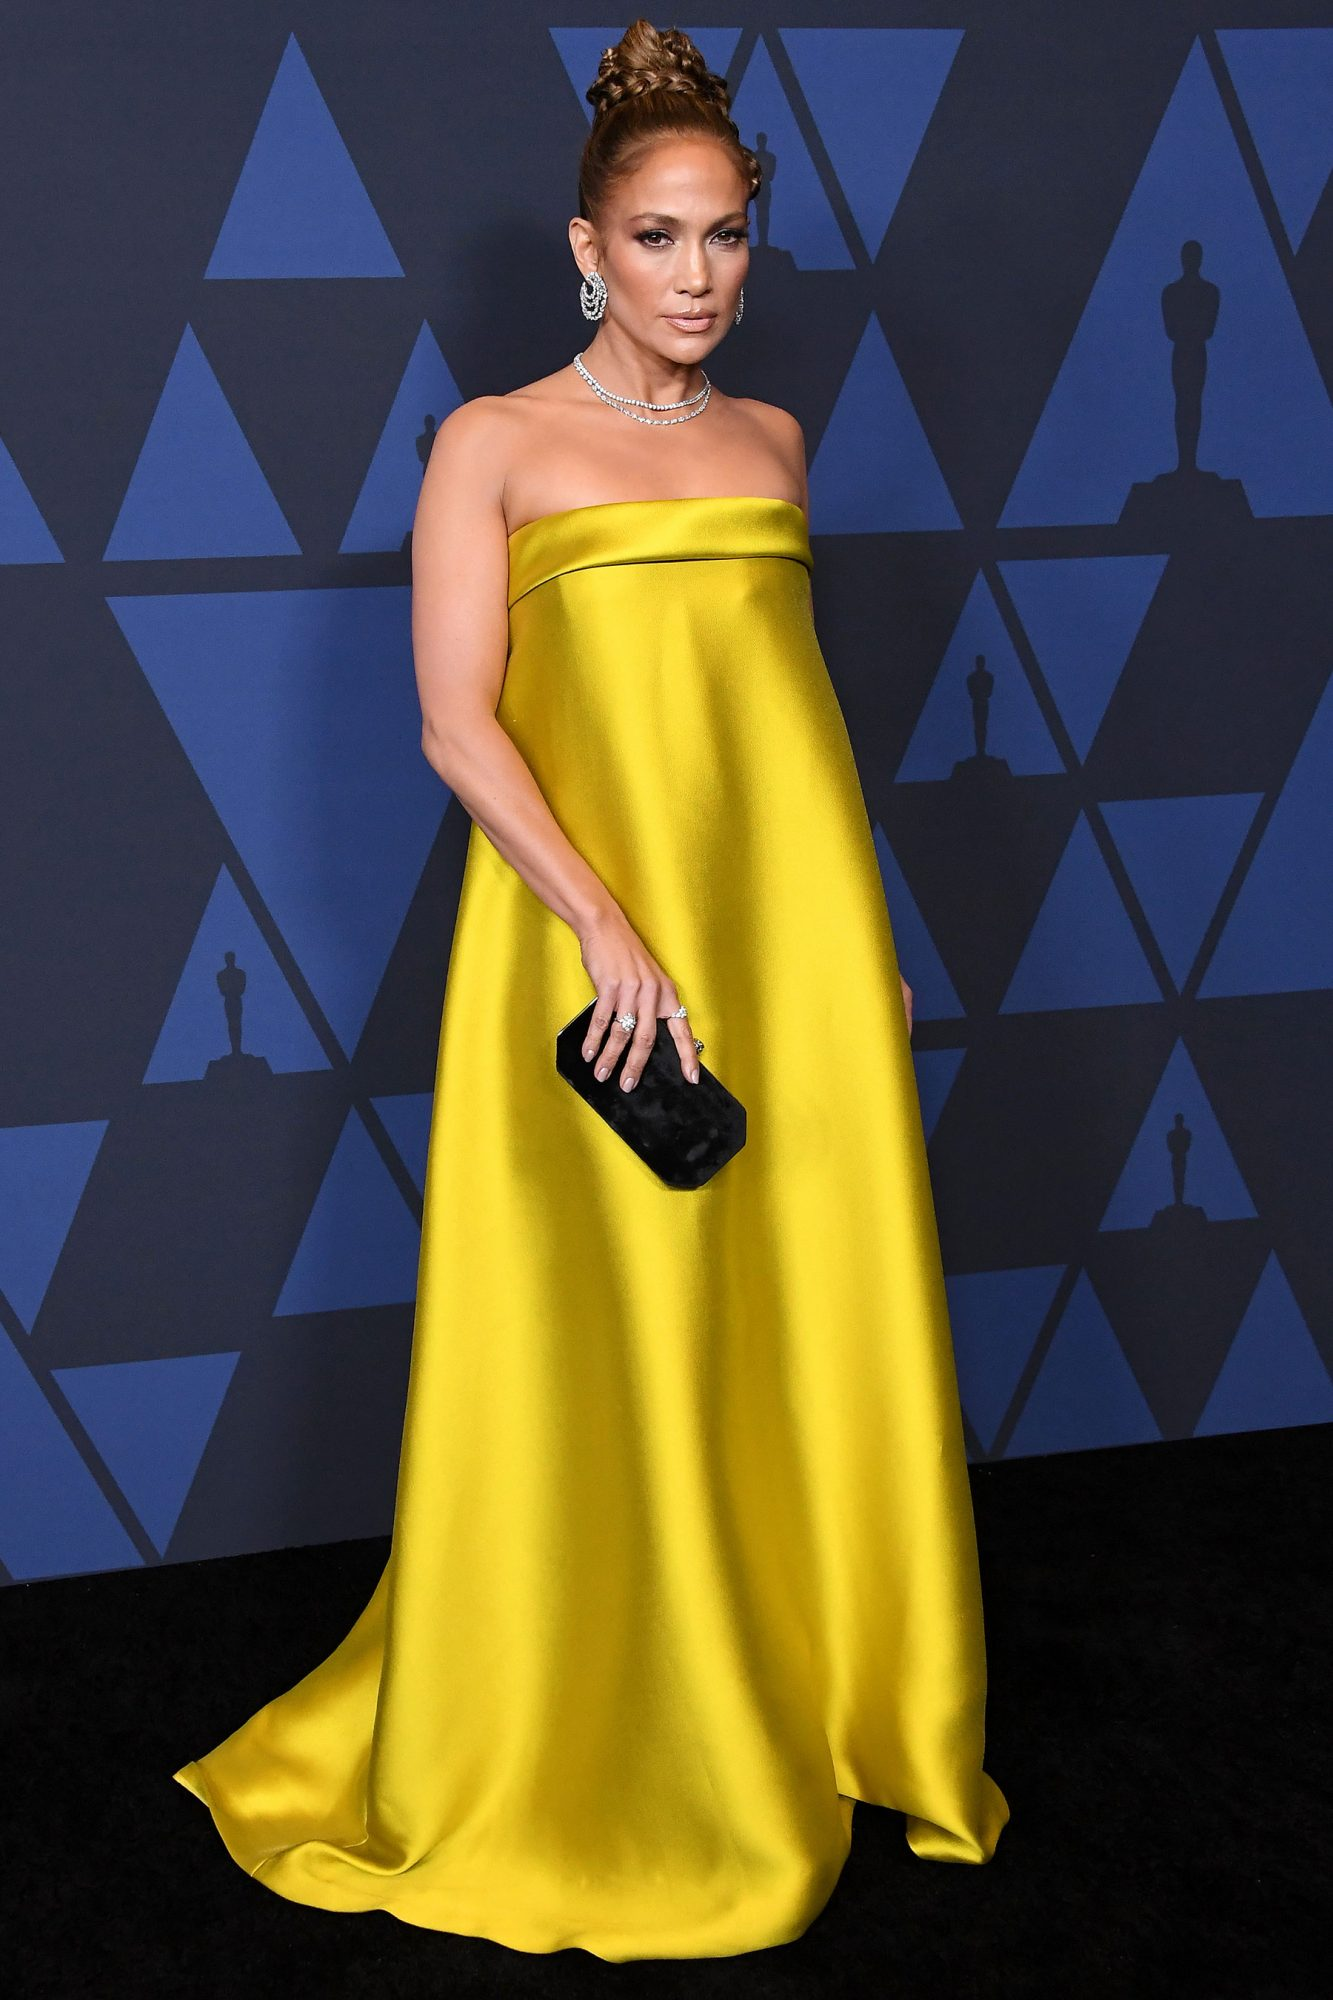 Governors Awards